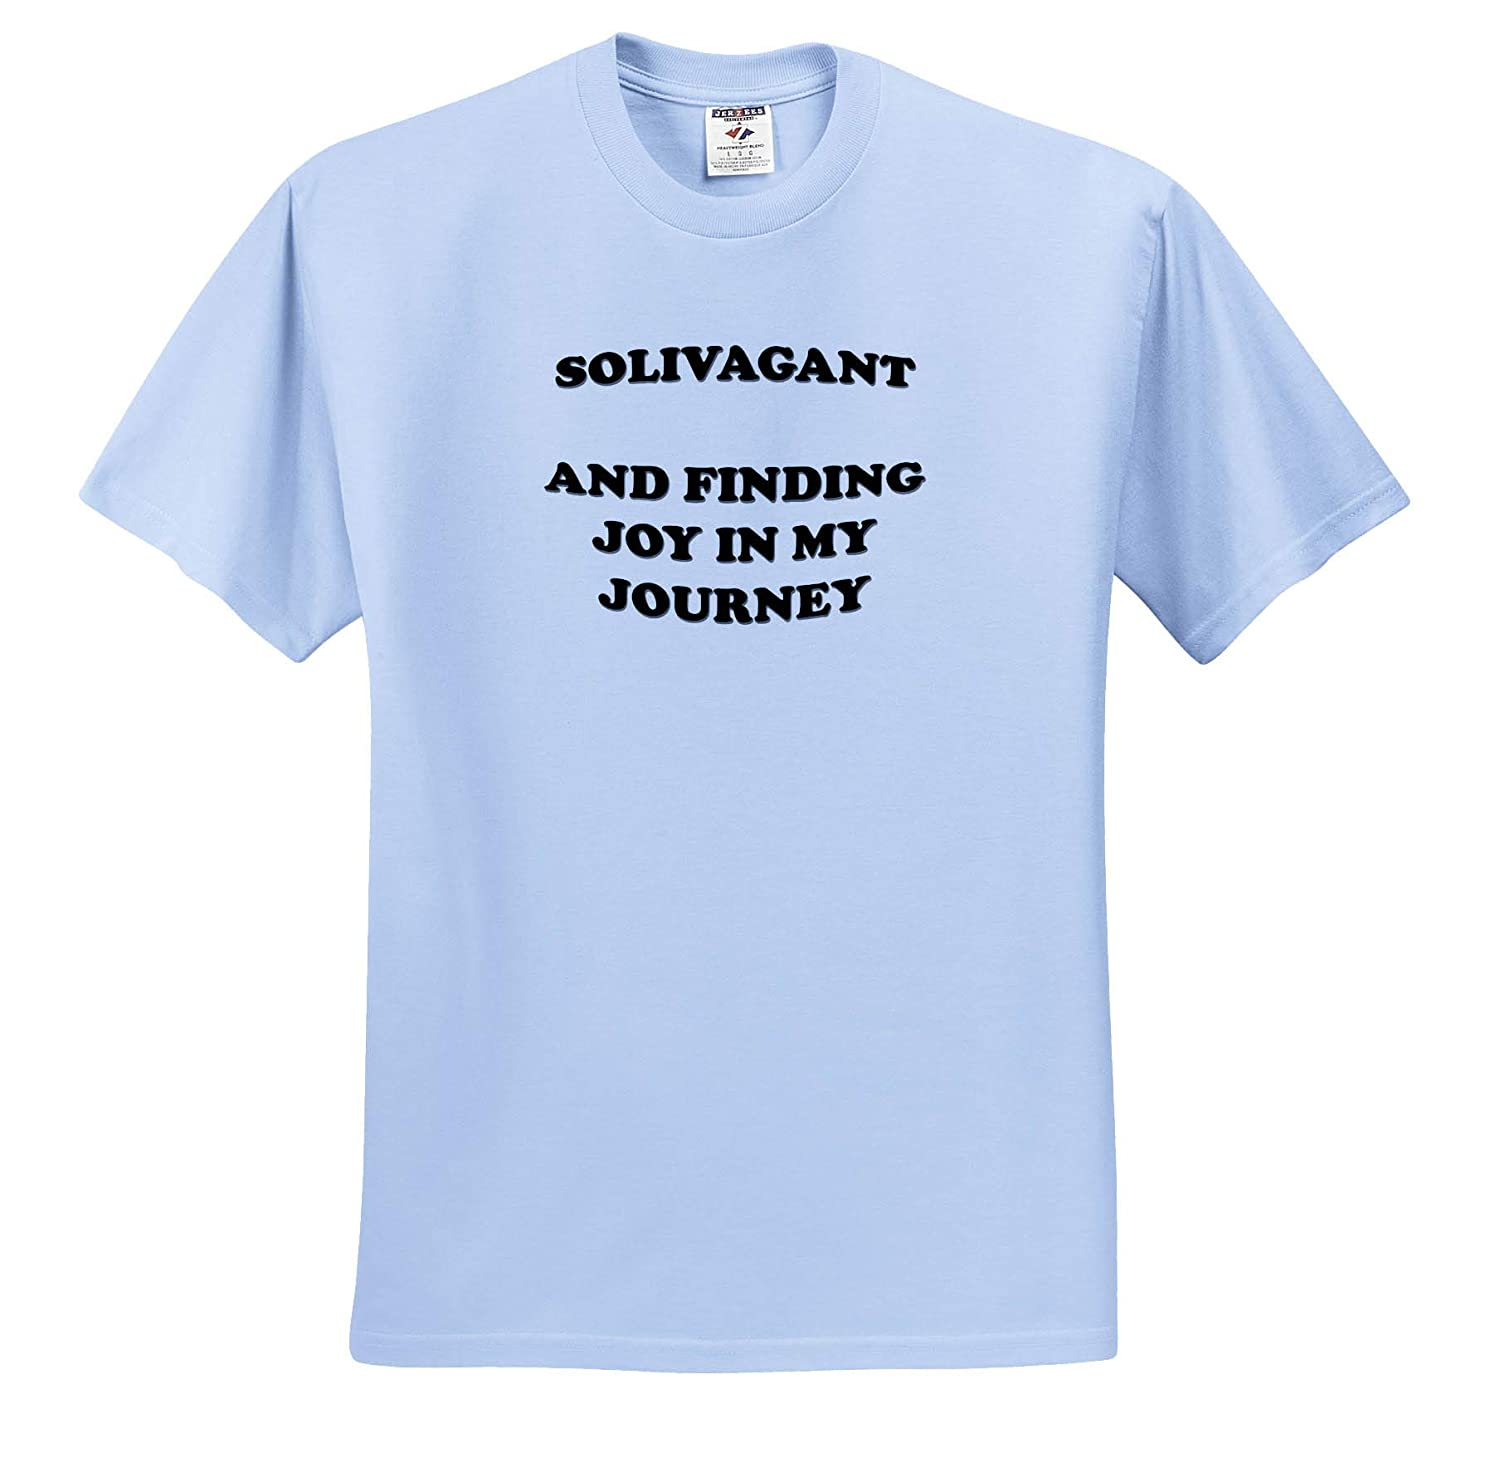 Text Design T-Shirts Solivagant 3dRose Taiche Solivagant and Finding Joy in My Journey